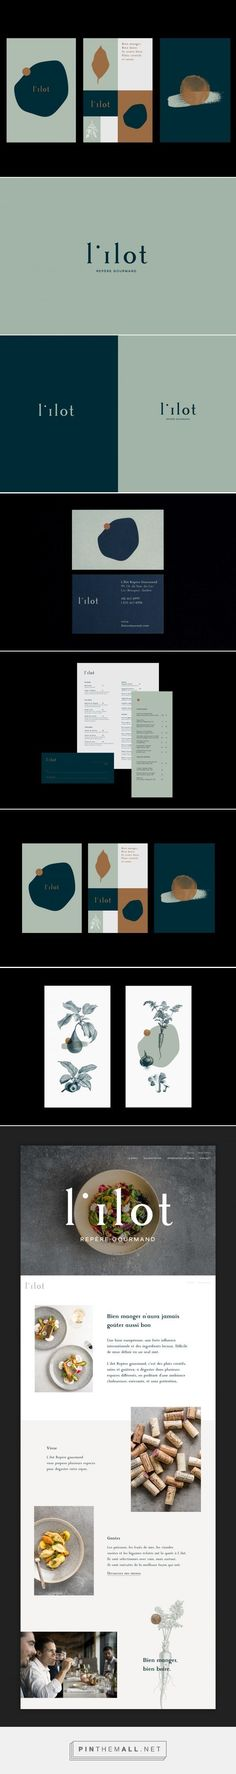 Branding board and complete brand identity for a modern and arty brand that is colorful, yet minimalist. Blue and mint green combined to a color palette that looks professional and functional with a p - My Design Ideas 2019 Corporate Design, Brand Identity Design, Graphic Design Branding, Modern Graphic Design, Corporate Branding, Web Design, Slow Design, Fashion Logo Design, Restaurant Branding